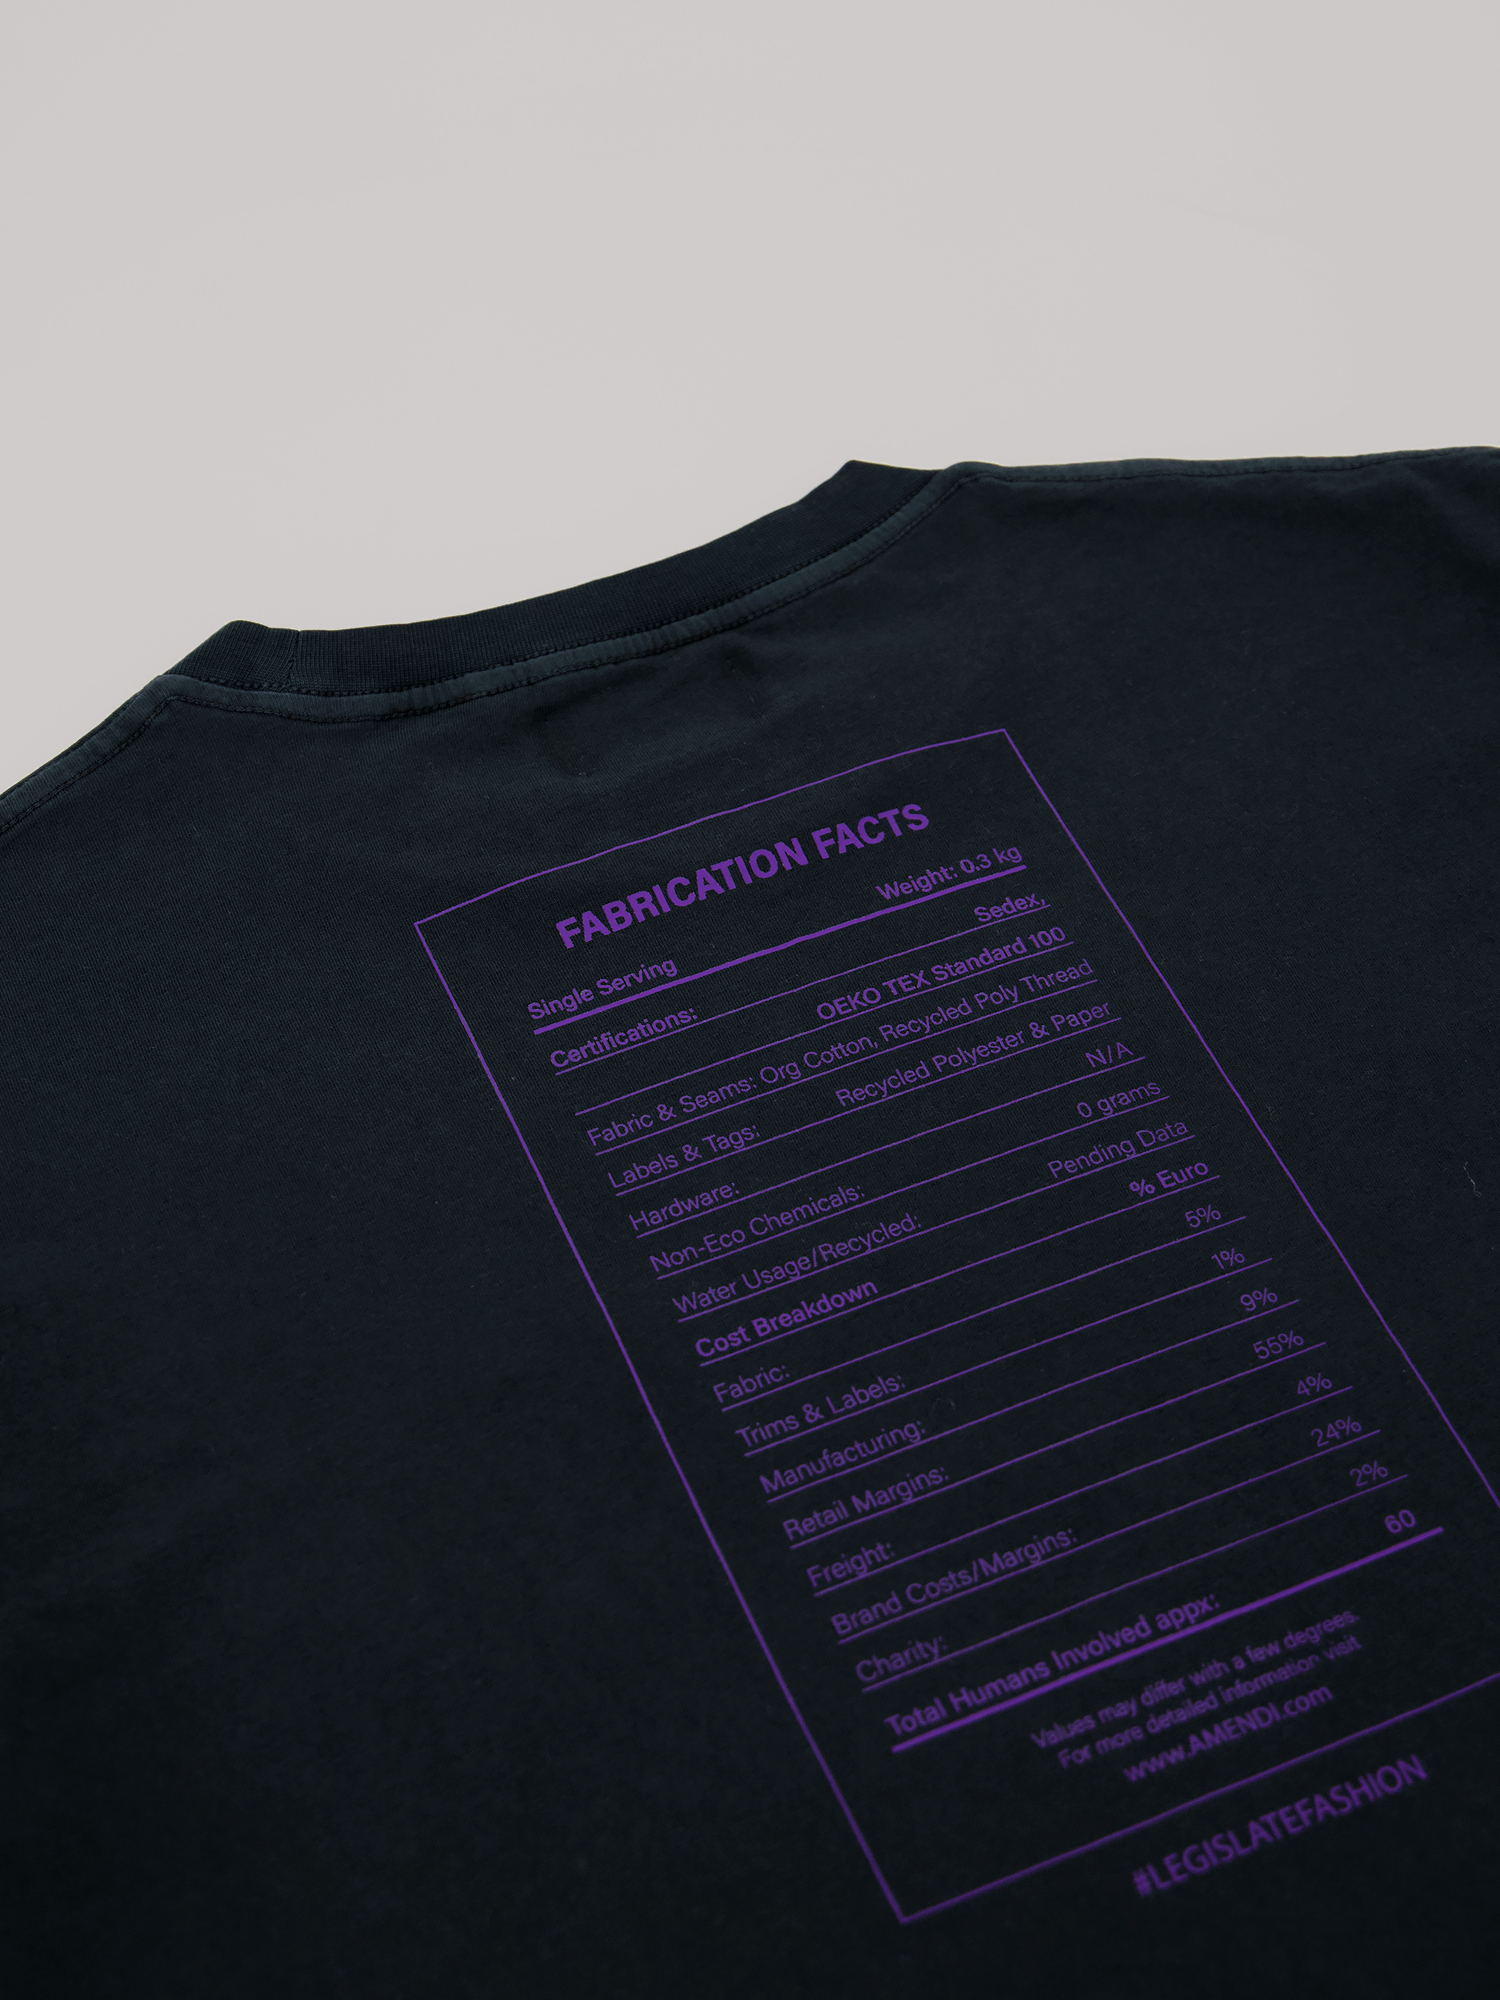 AMENDI black t-shirt with purple text about fabrication facts